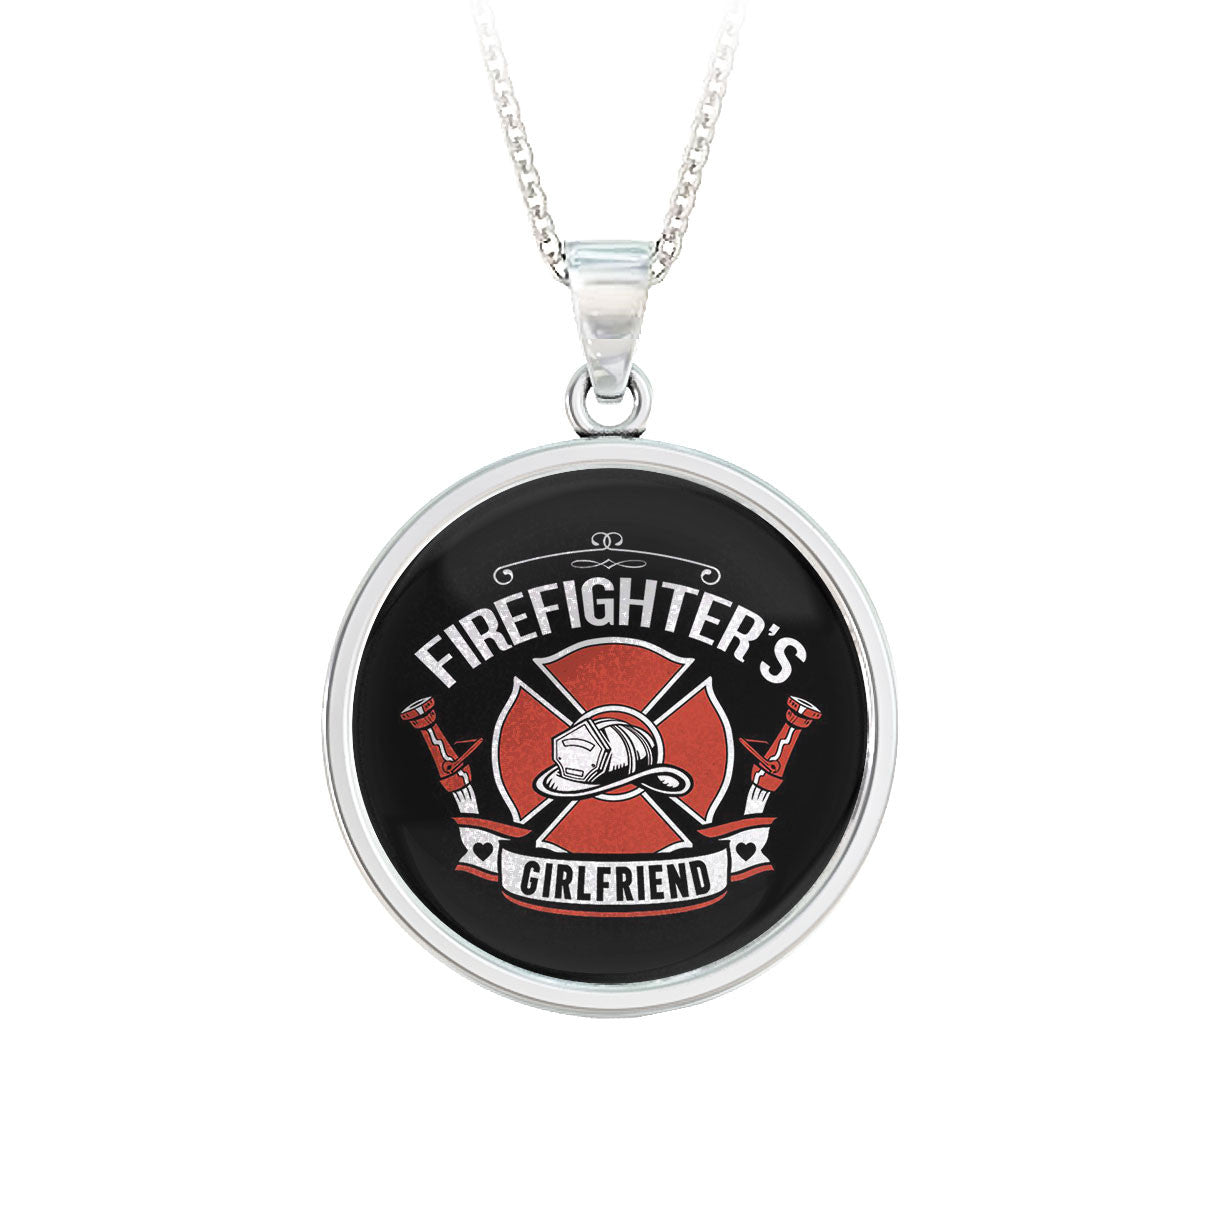 Firefighter's Girlfriend Pendant